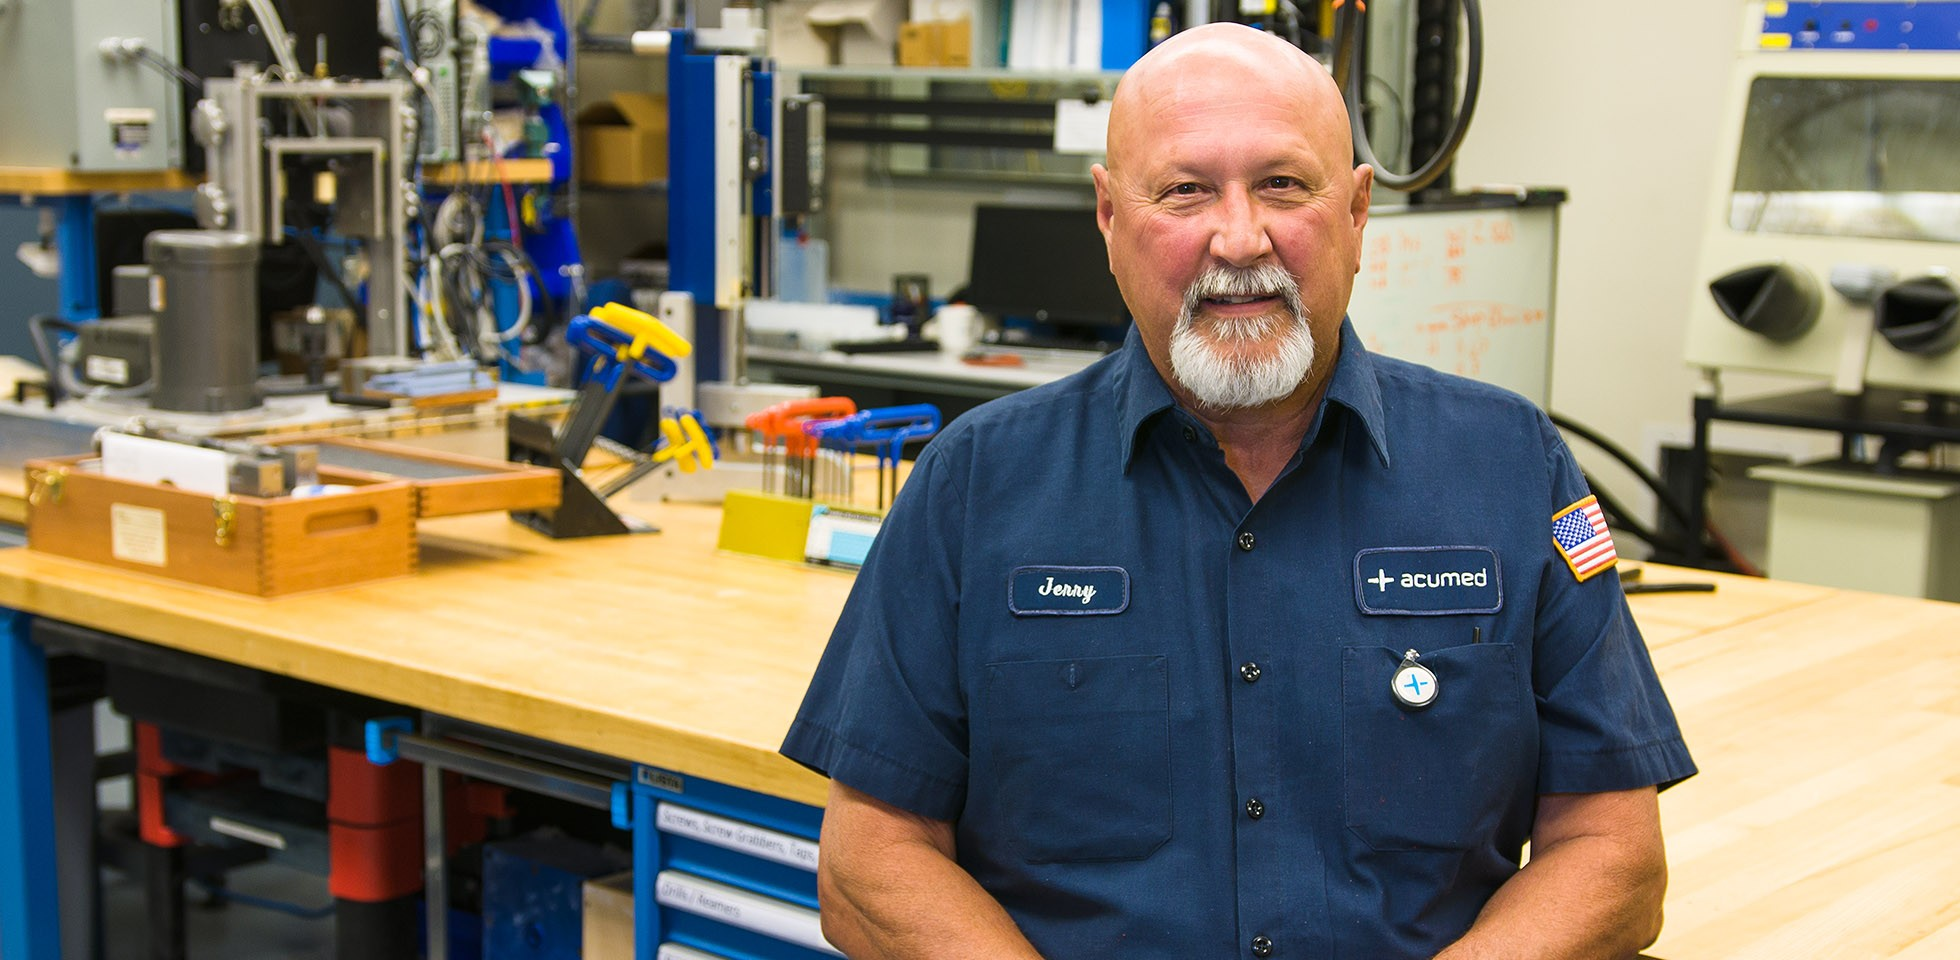 Jerry Stainbrook, Machinist 2 - Acumed Careers